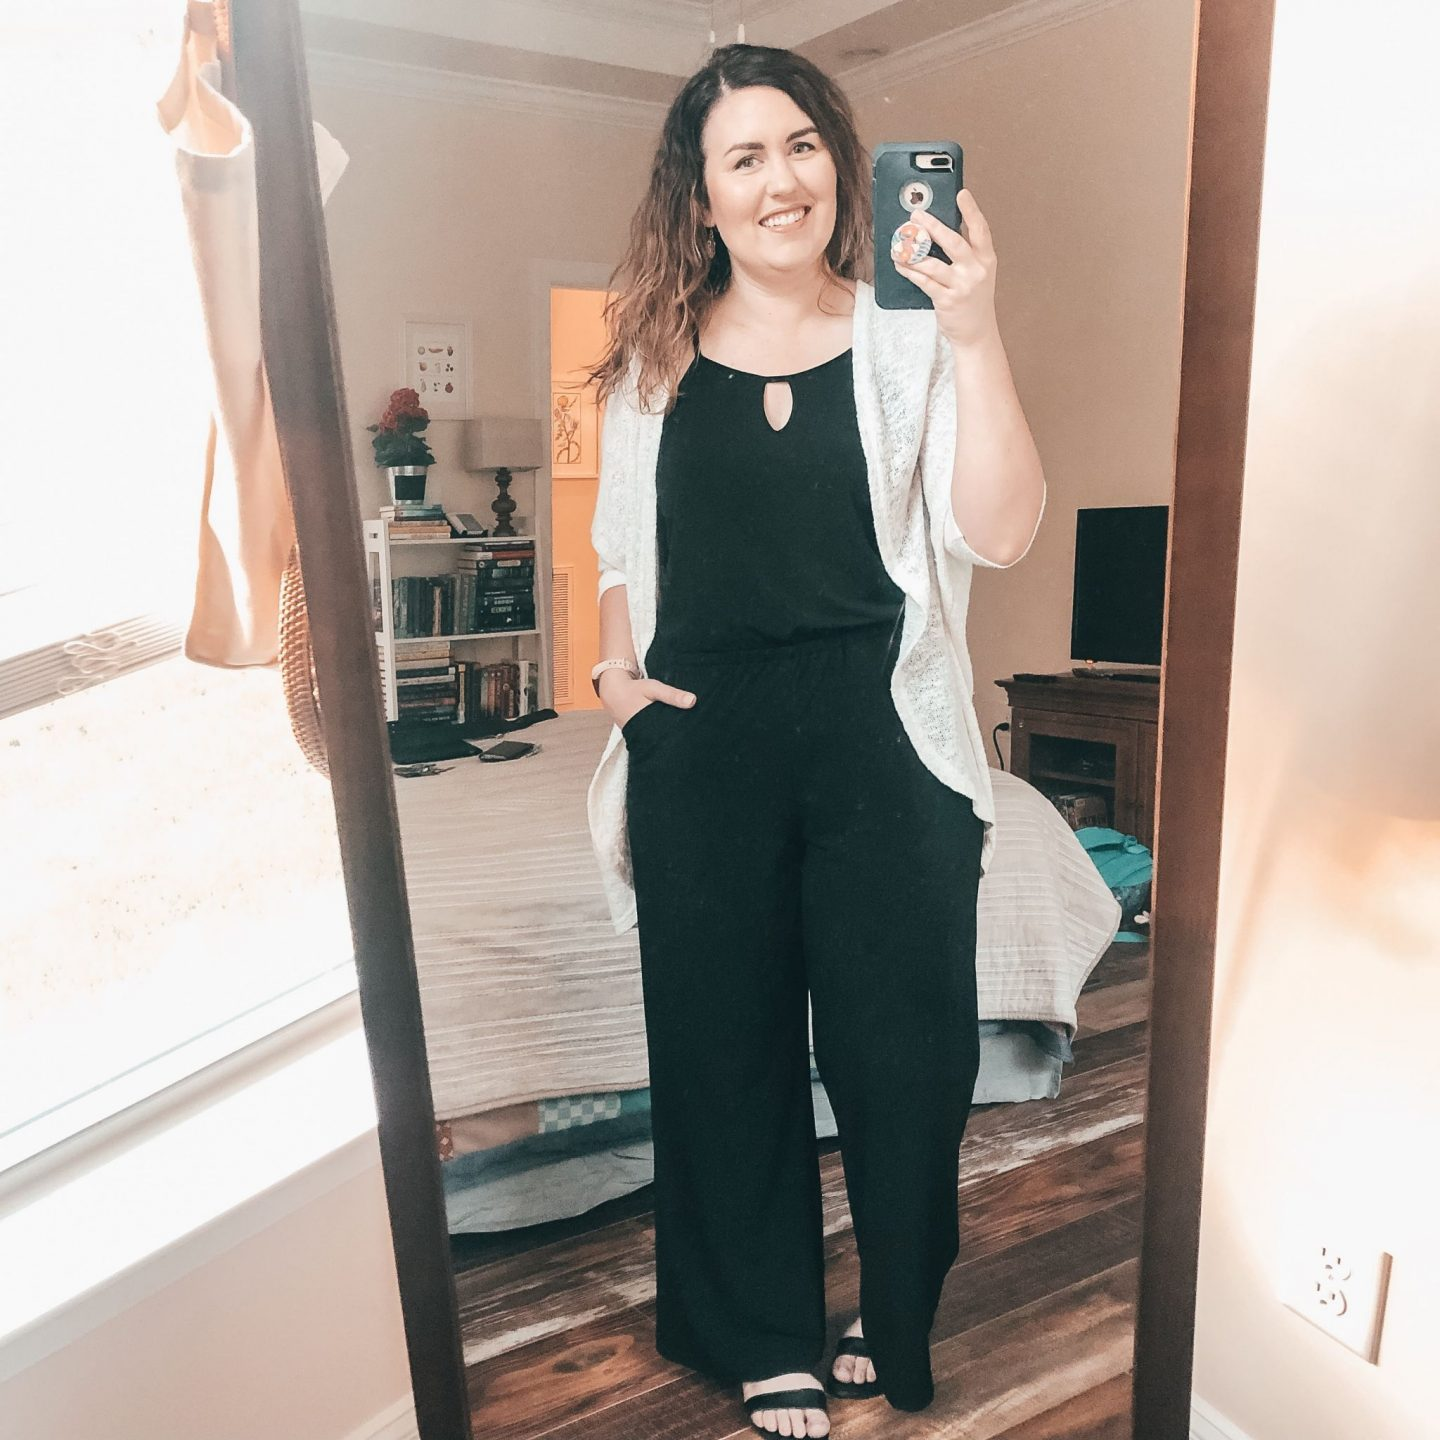 NC blogger Rebecca Lately shares her picks for the Nisolo end of season sale, along with outfit ideas for the Nisolo pieces she already owns.